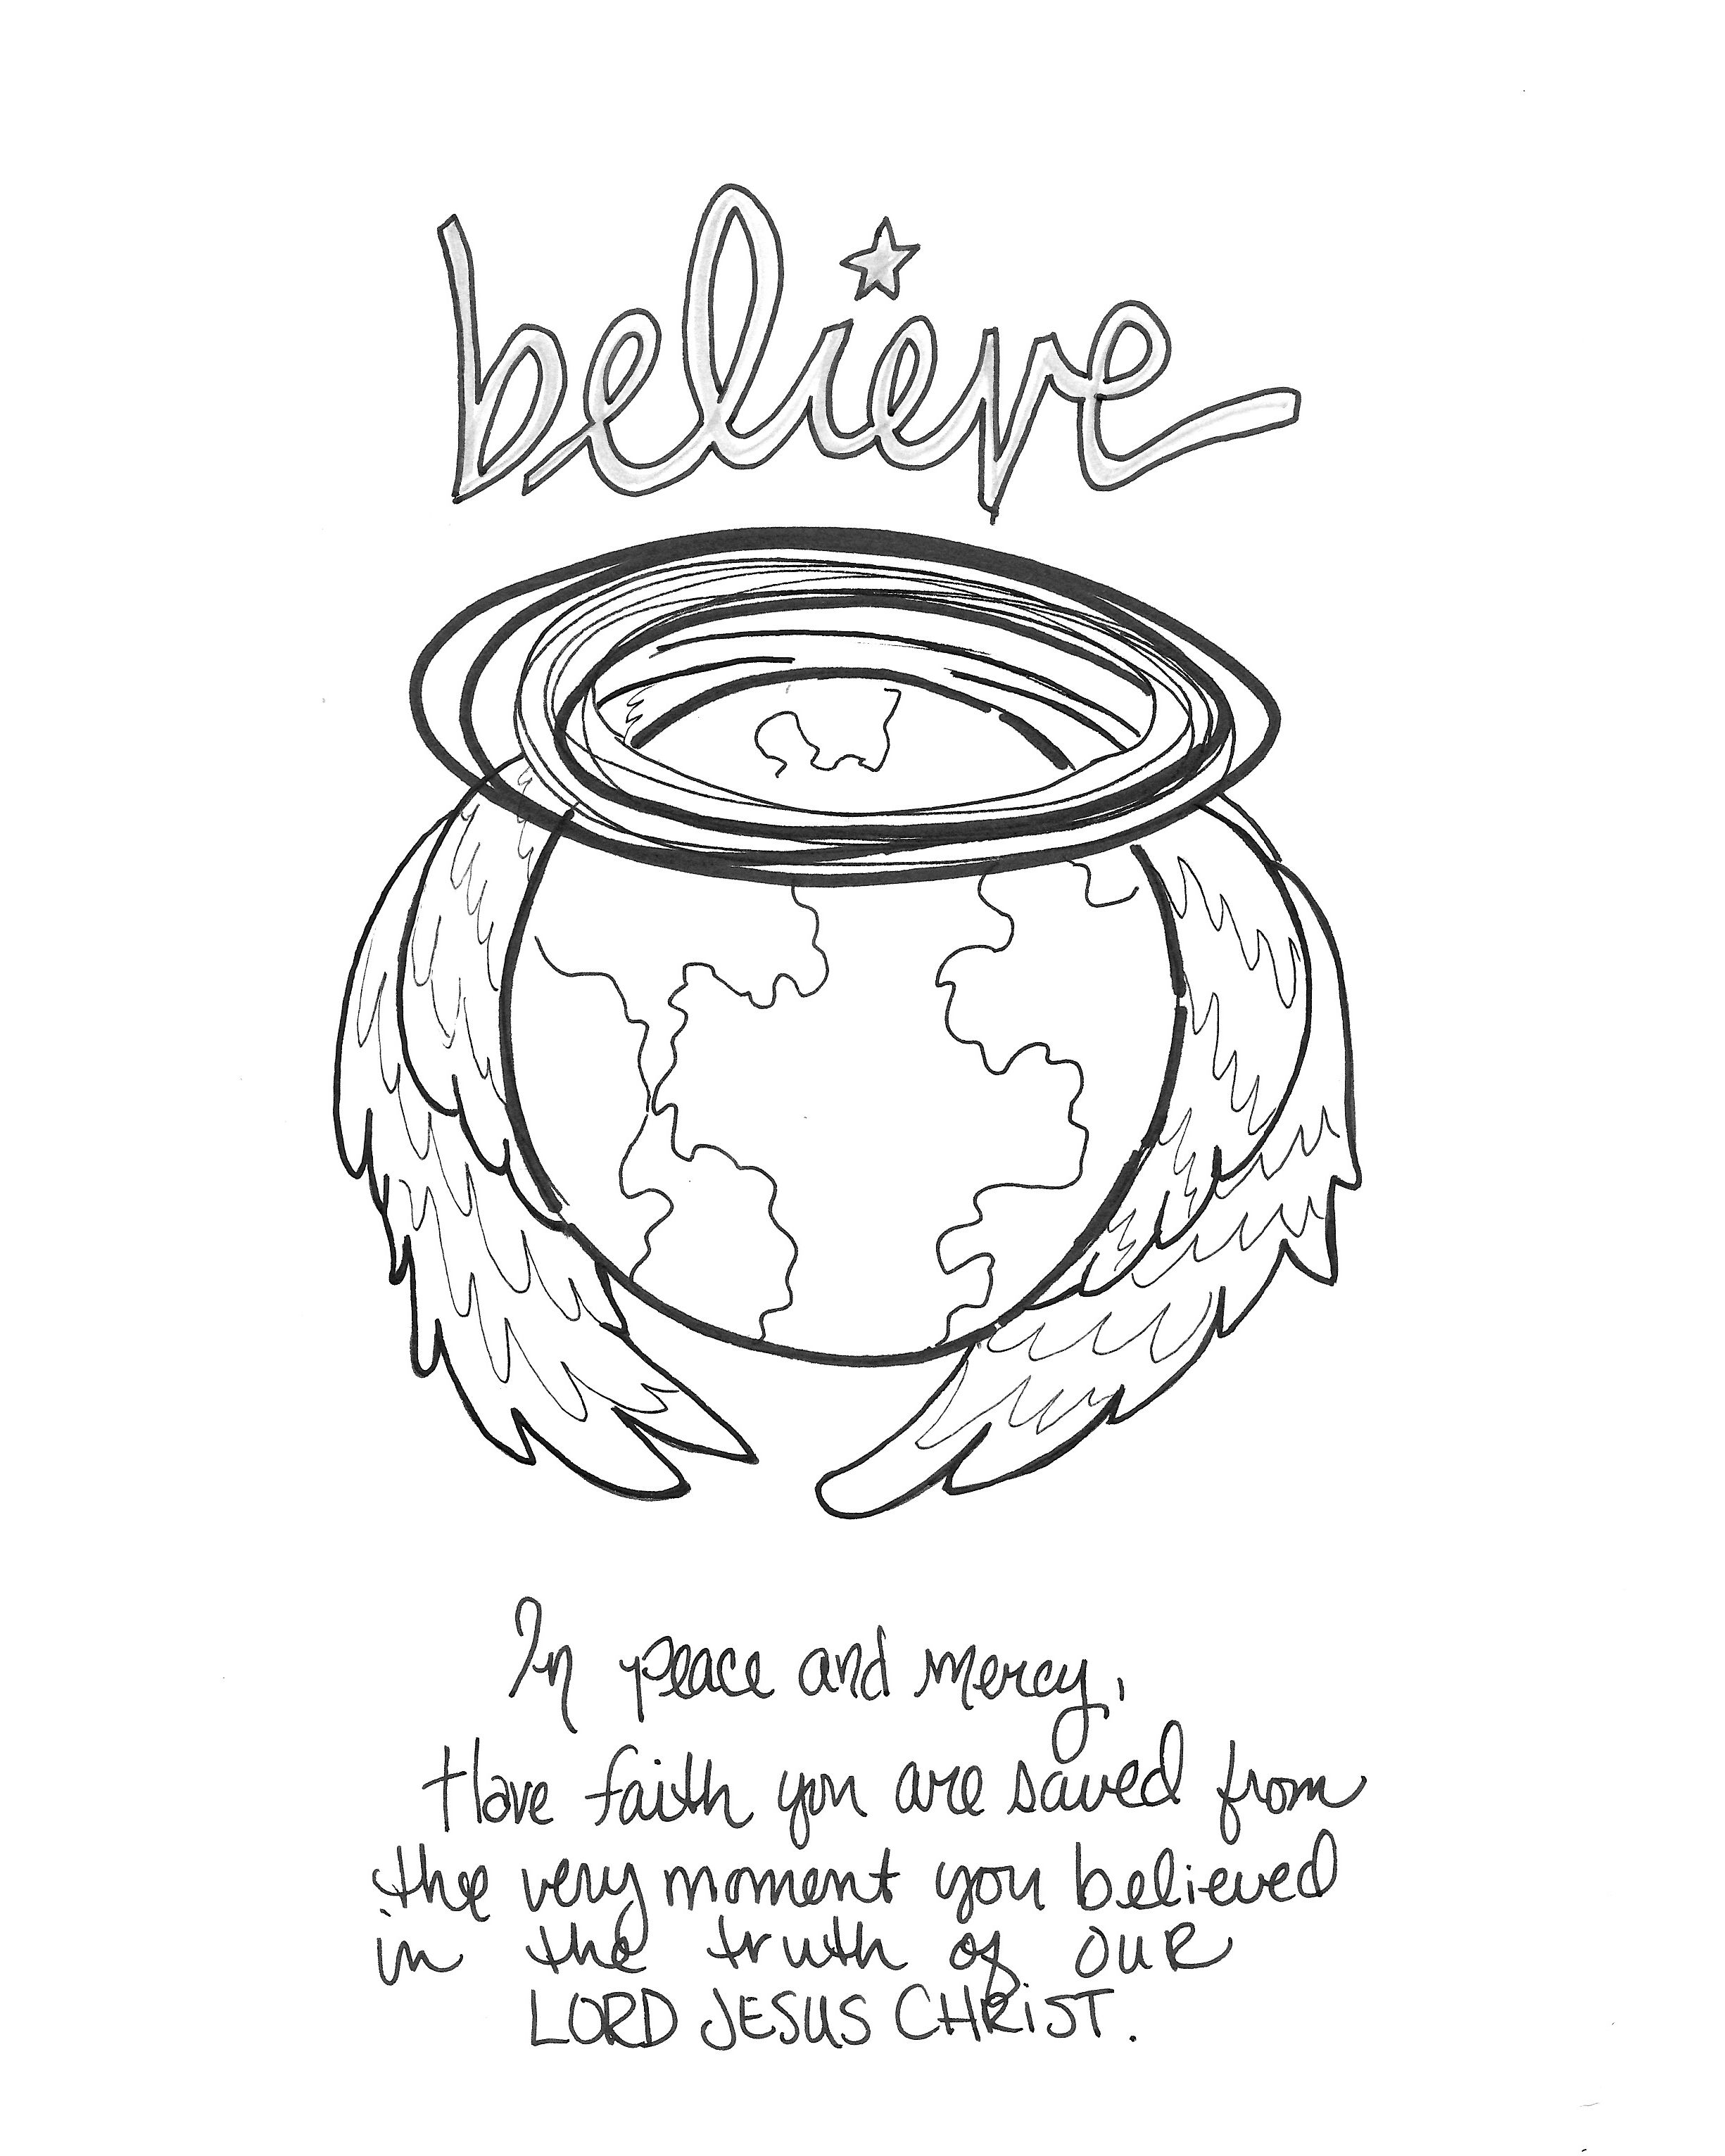 Psalm 91:4 Printable Free 8x10 Coloring Devotions to